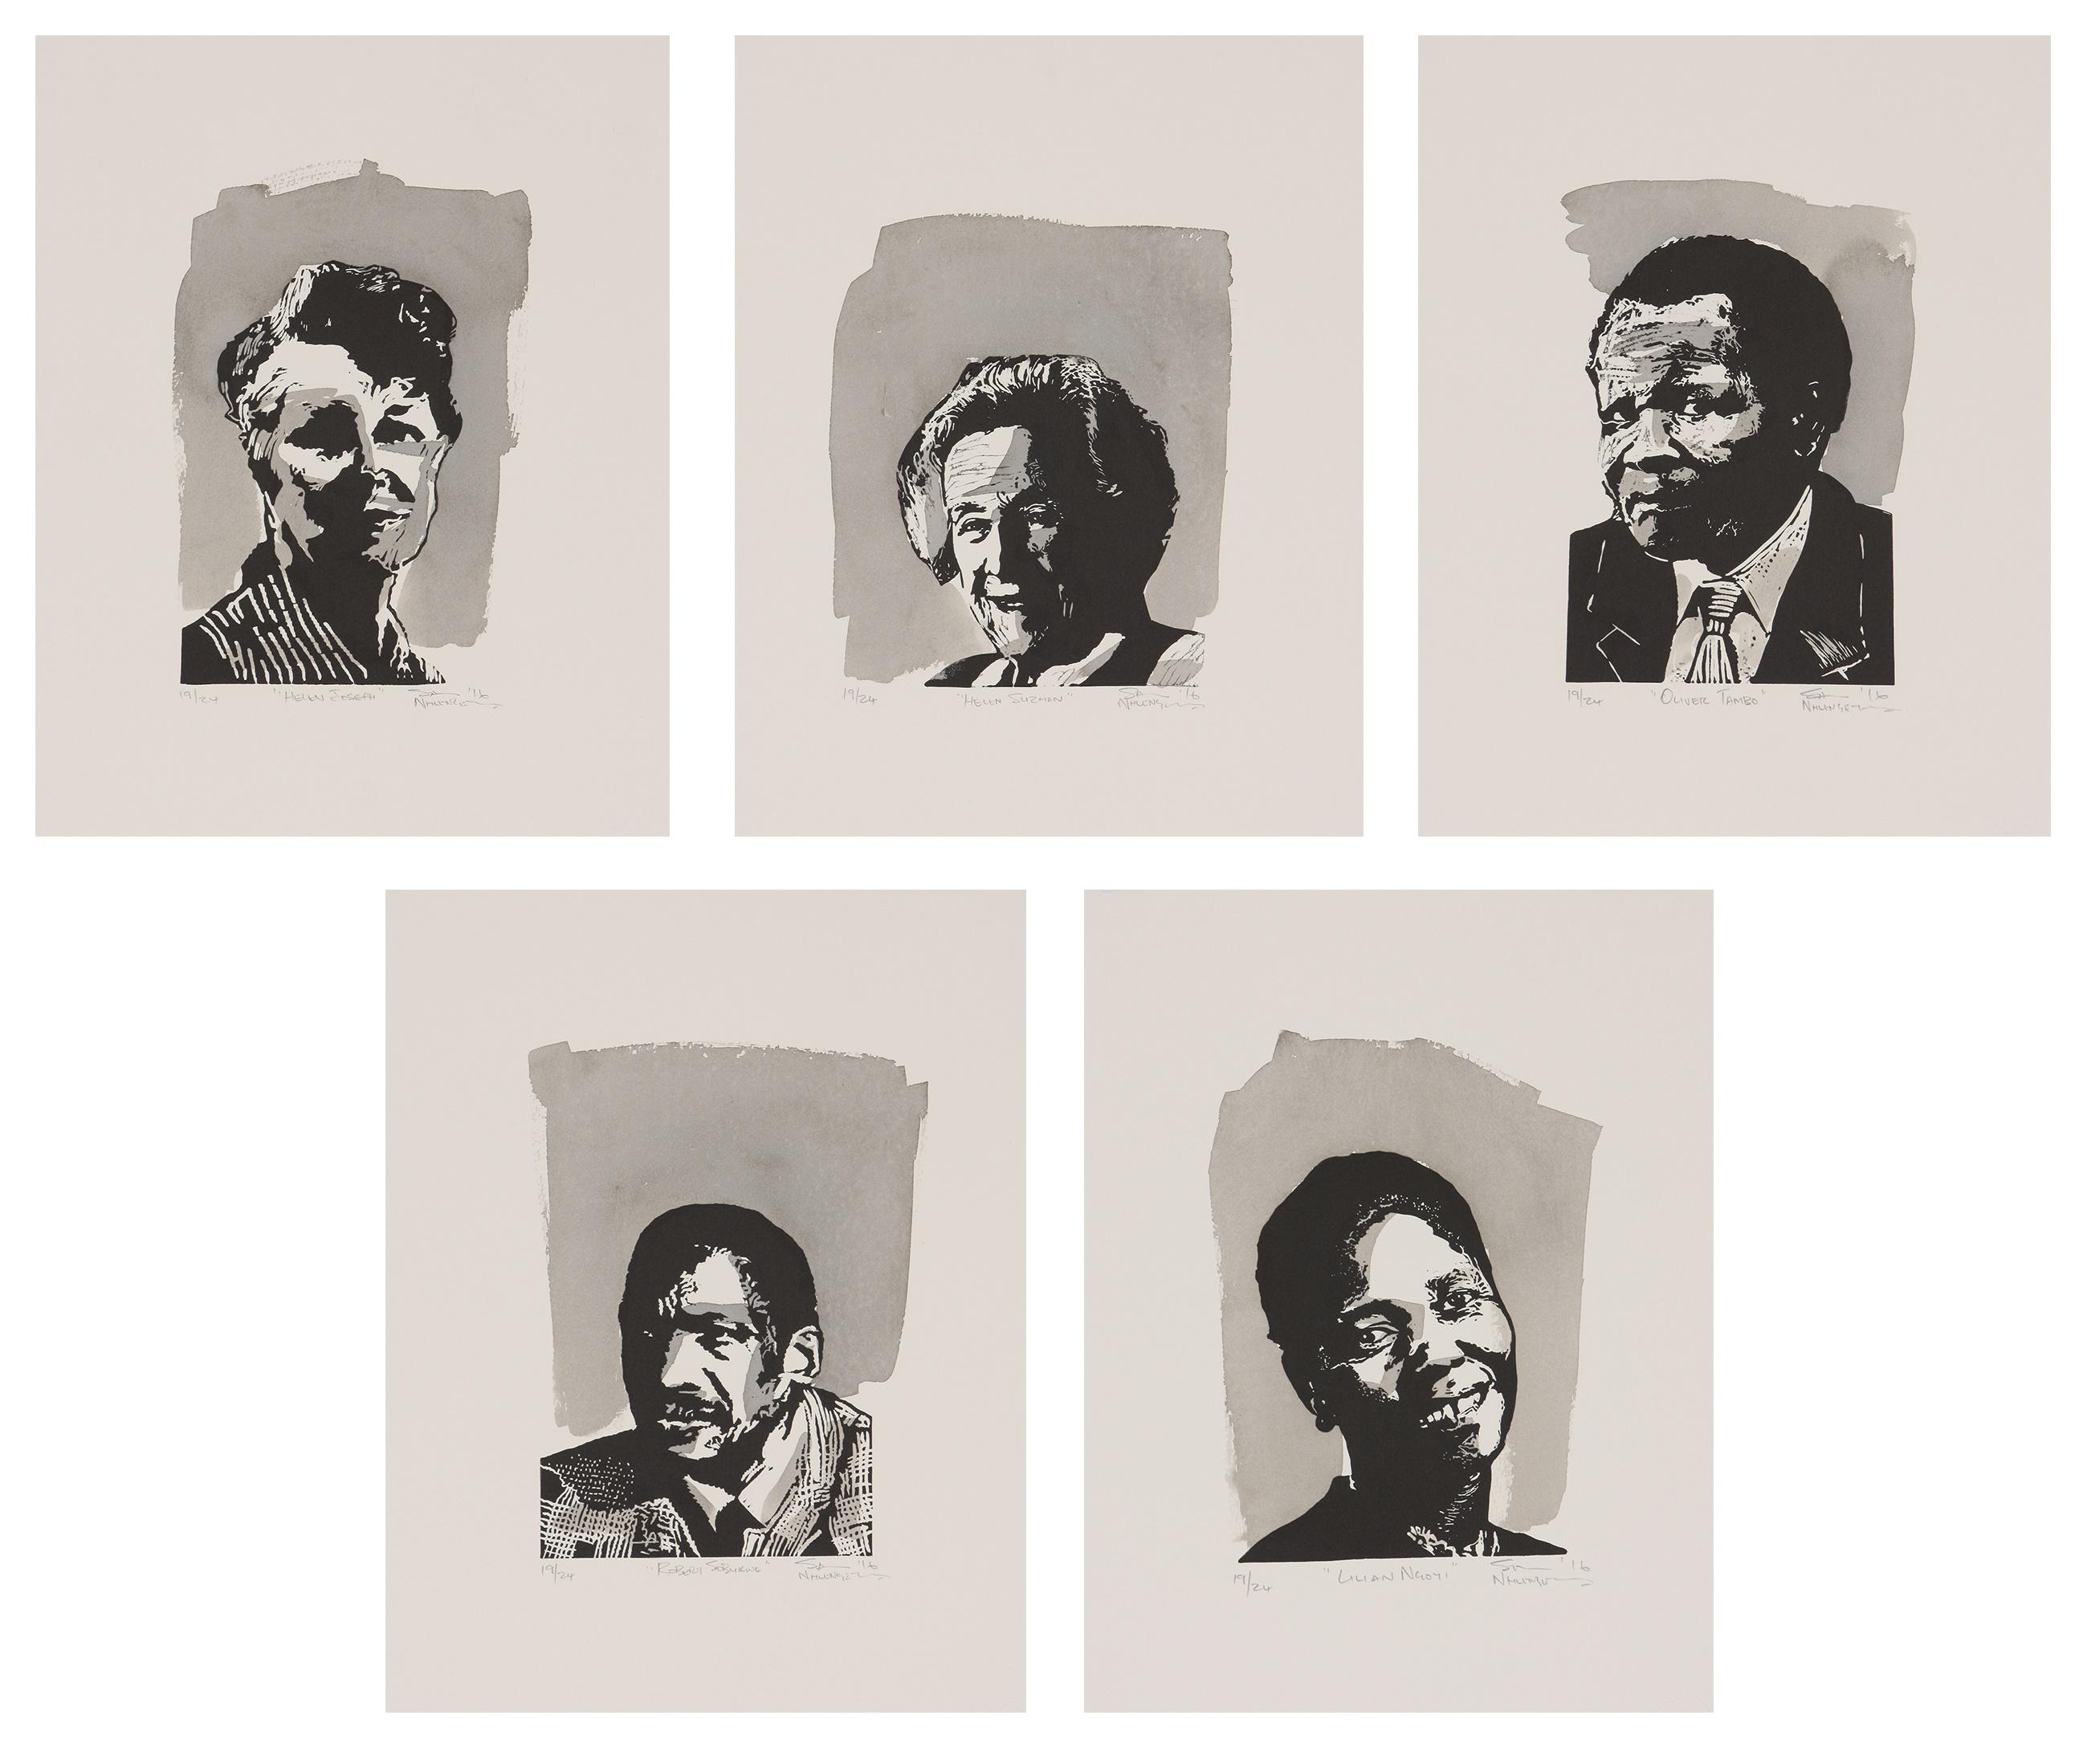 Sam Nhlengethwa (South Africa 1955-) Mzansi Legends: Including: Helen Suzman, Lilian Ngoyi, Oliver Thambo, Helen Joseph and Robert Sobukwe (five), 2016